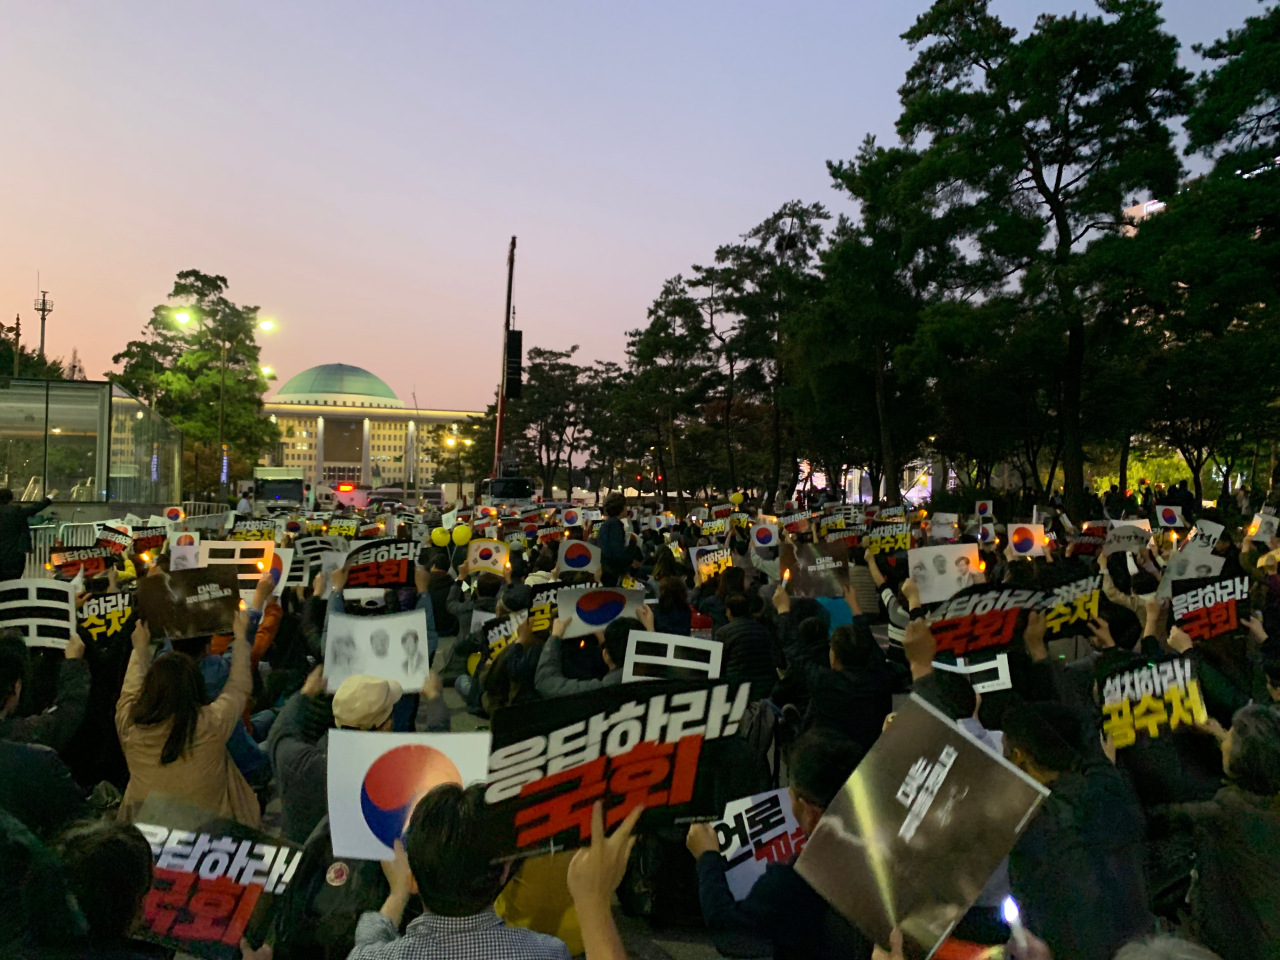 Protesters gather at the boulevard before the parliament building's main gate on Saturday. (Kim Arin/The Korea Herald)